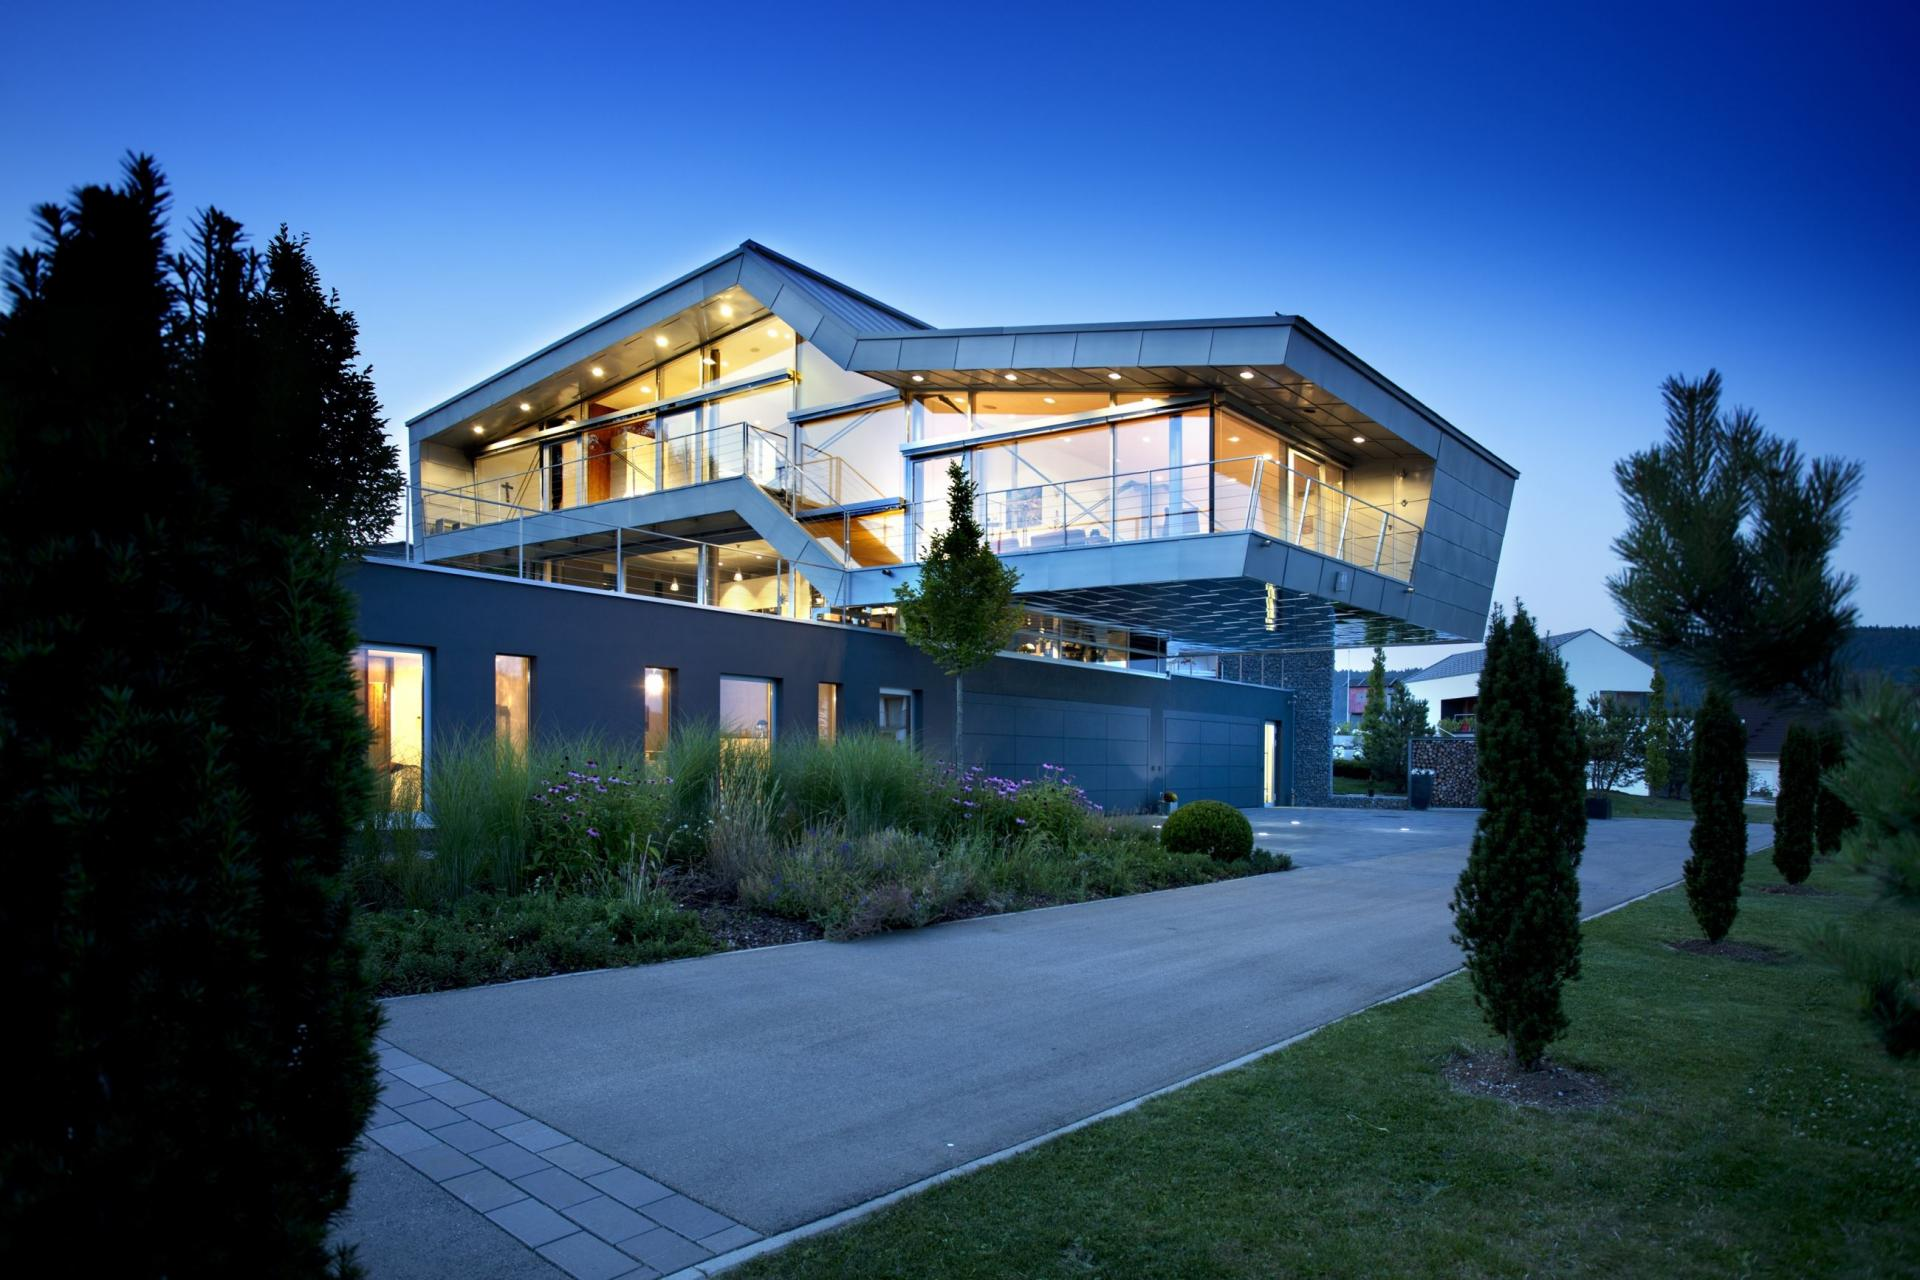 An engineer 39 s incredible high tech dream home for Incredible home designs